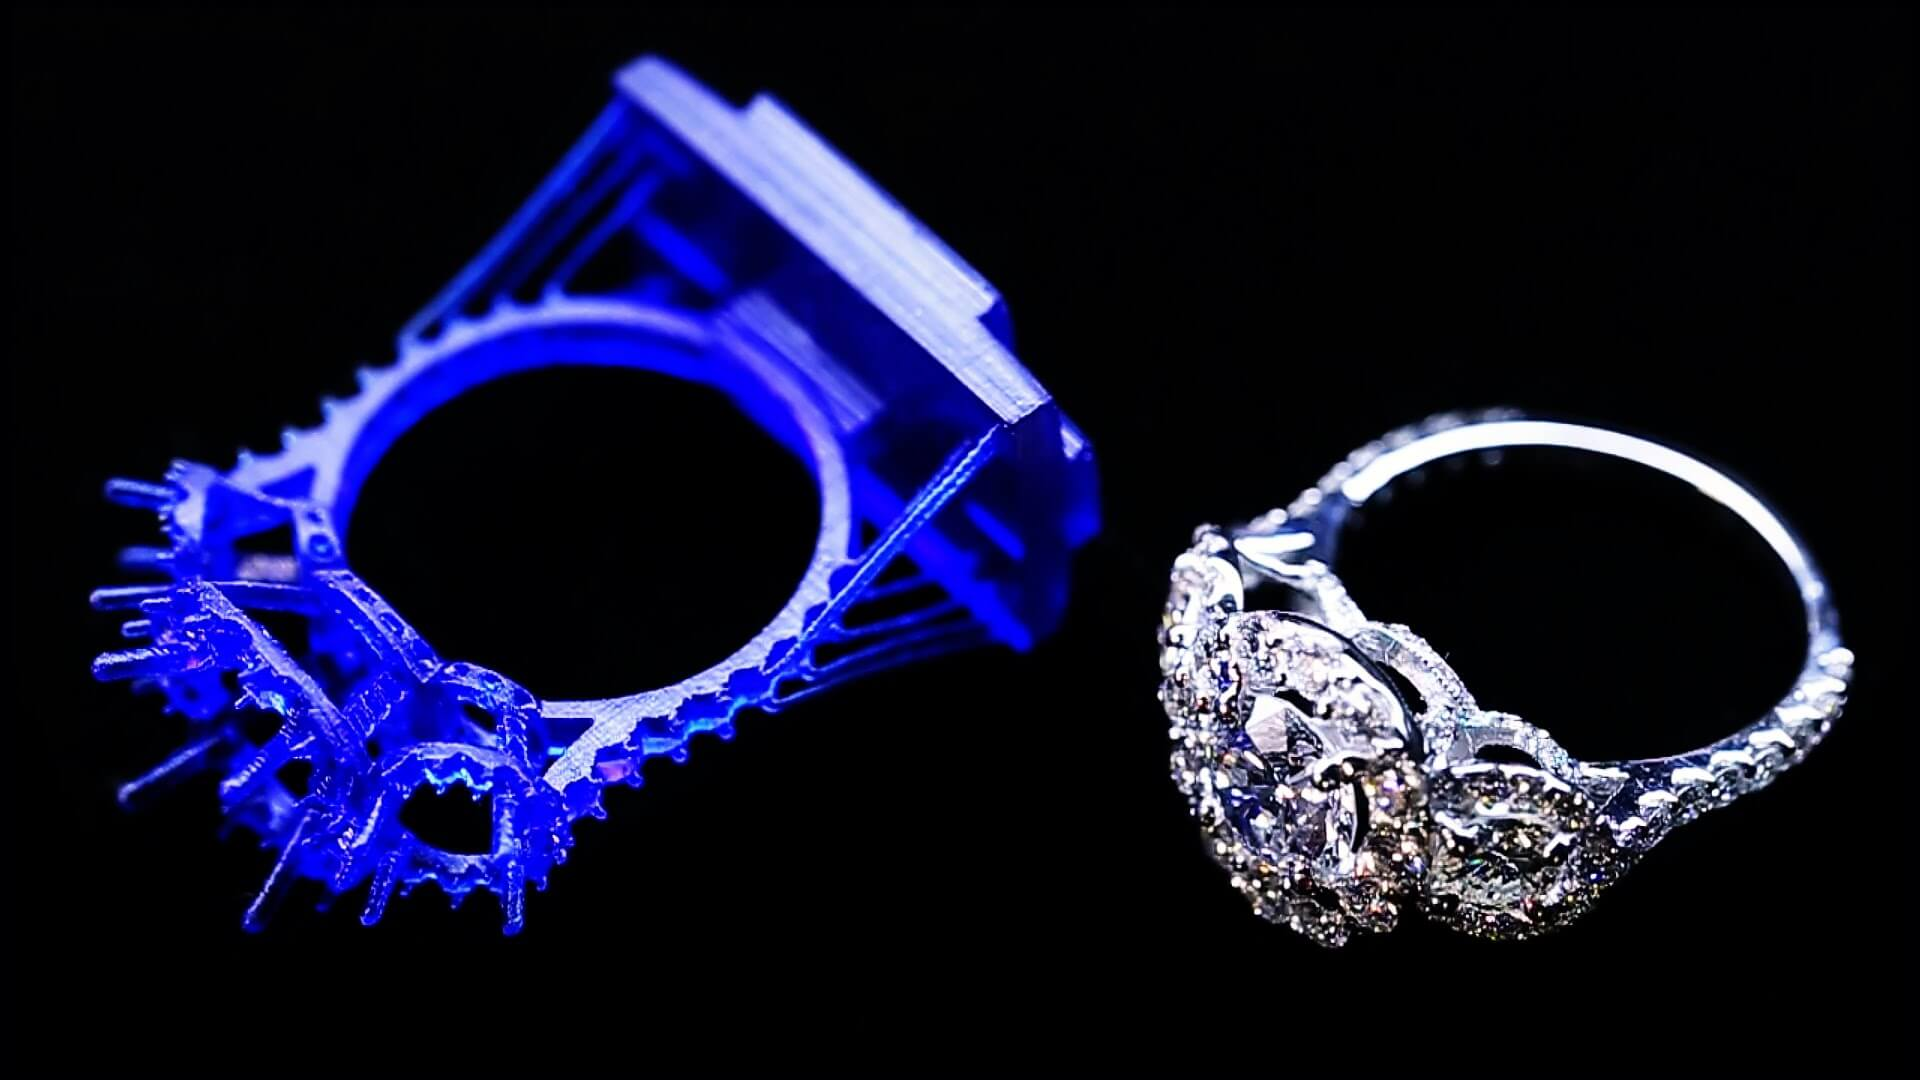 3d Printed Jewelry- Transforming The Jewelry Designs